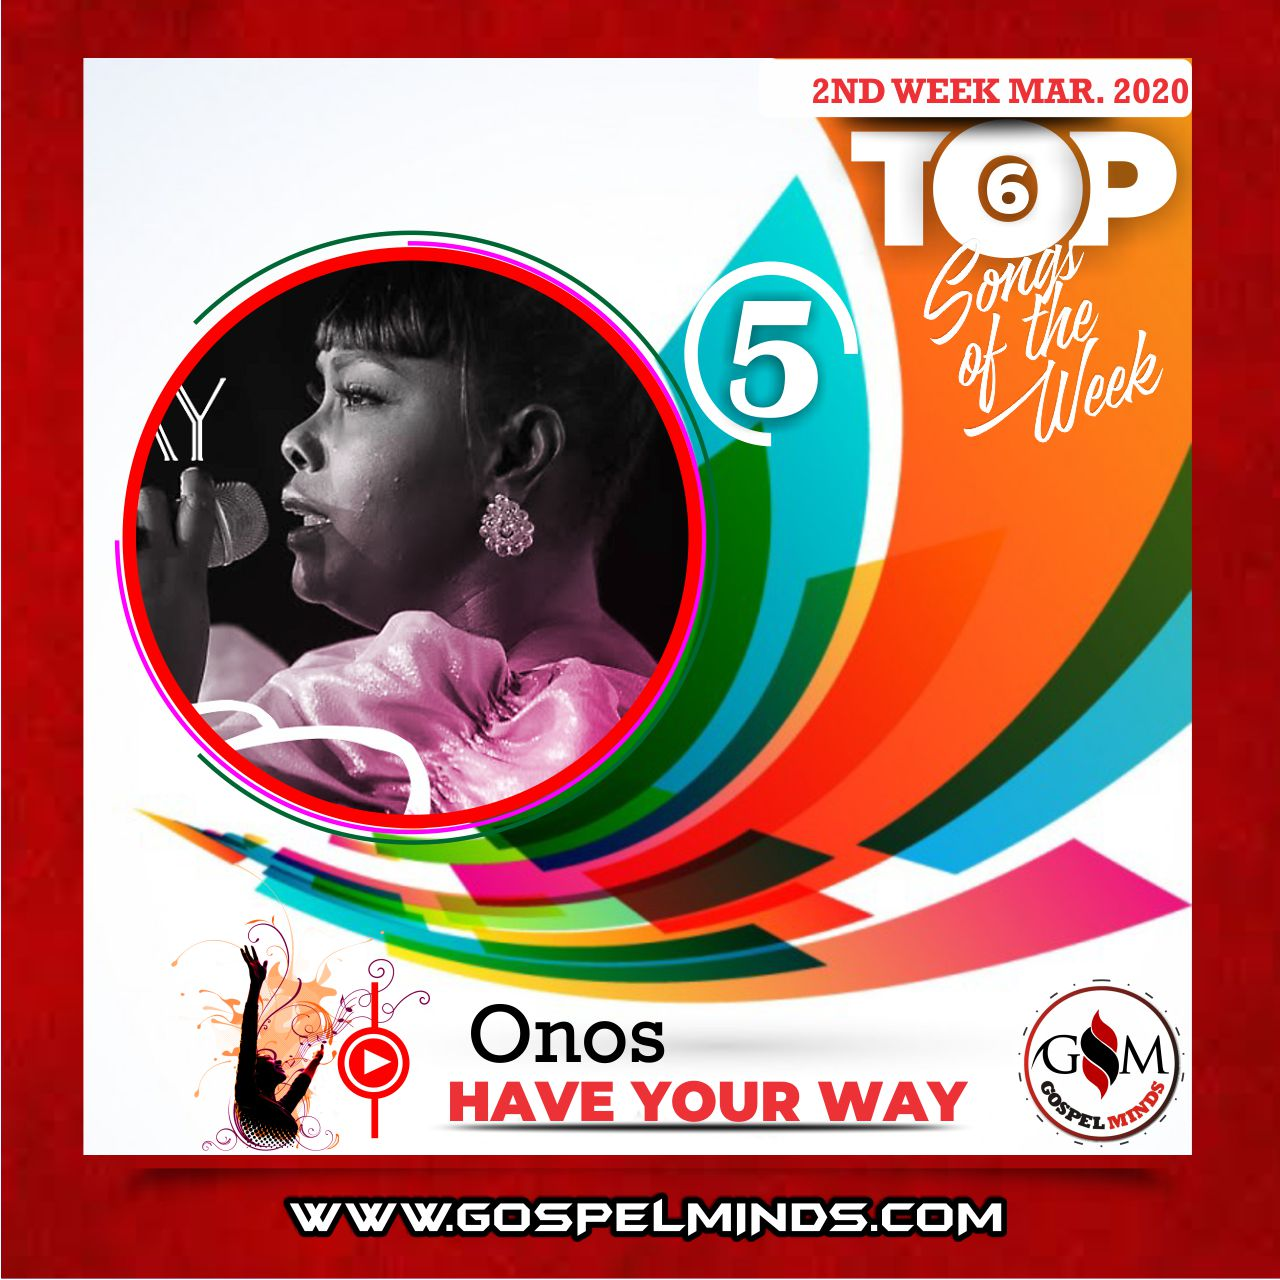 March 2nd Week 'Top 6 Gospel Songs Of The Week' Onos – Have Your Way